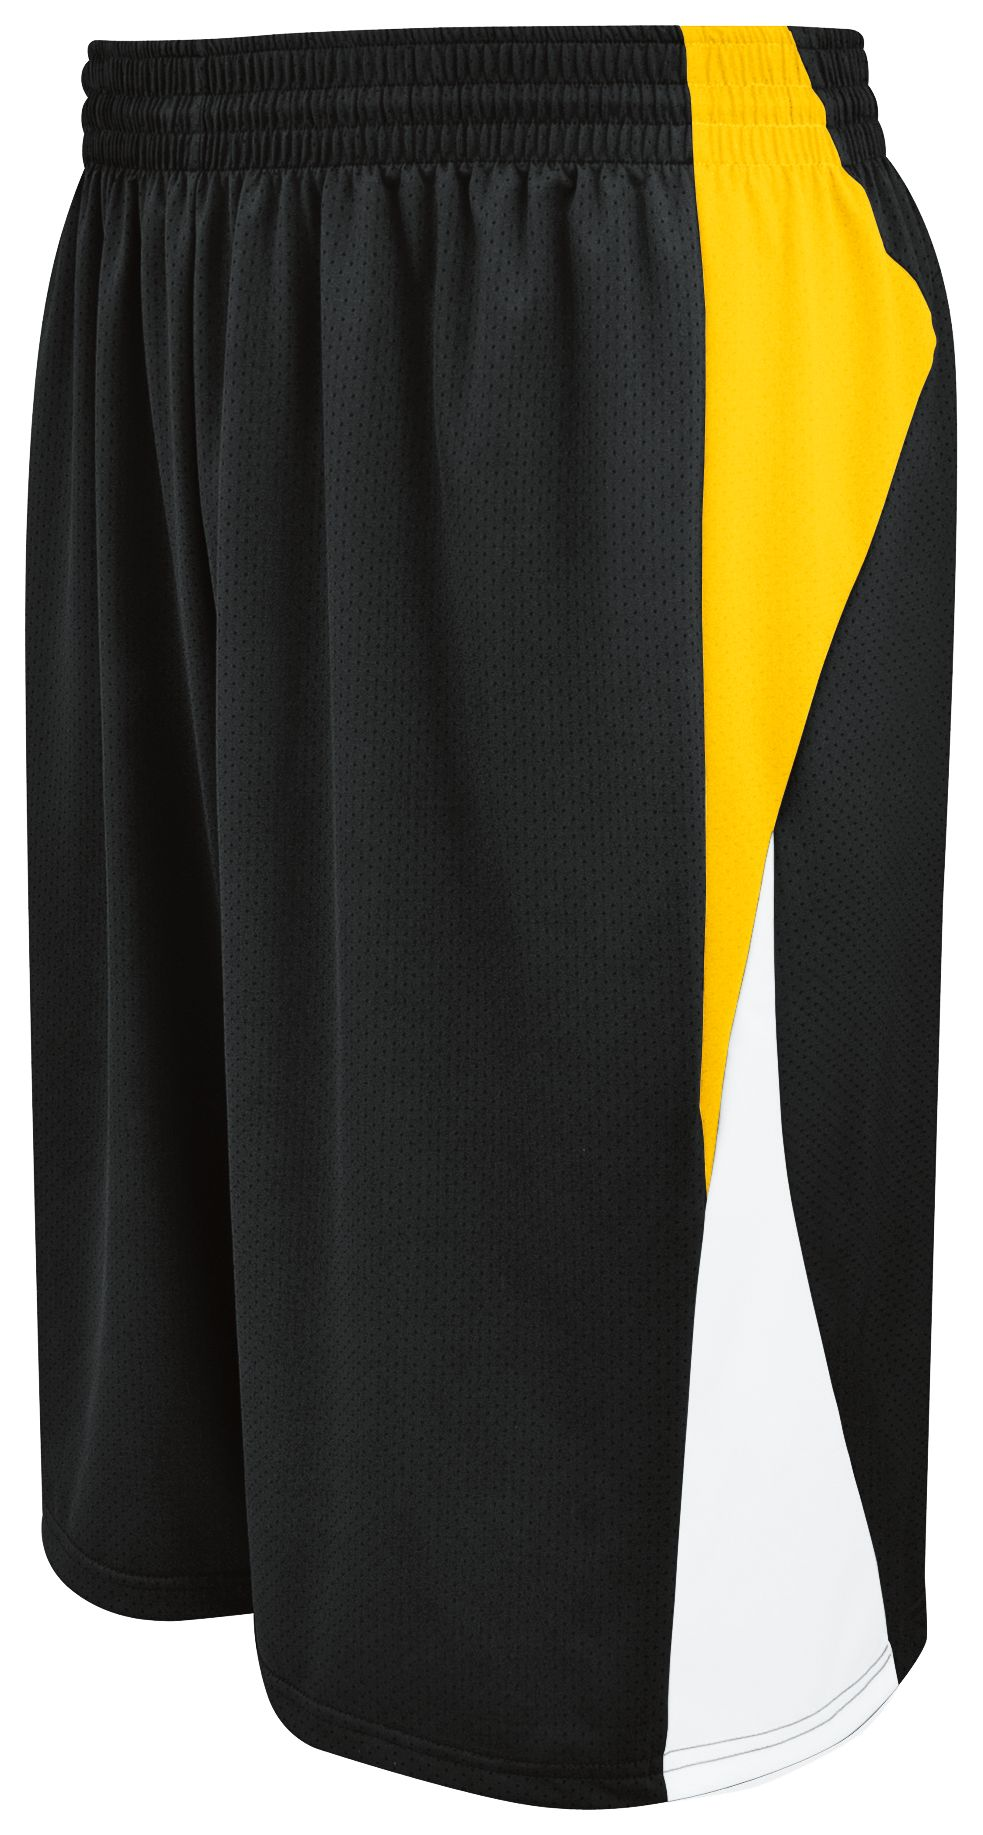 Campus Reversible Shorts - BLACK/ATHLETIC GOLD/WHITE